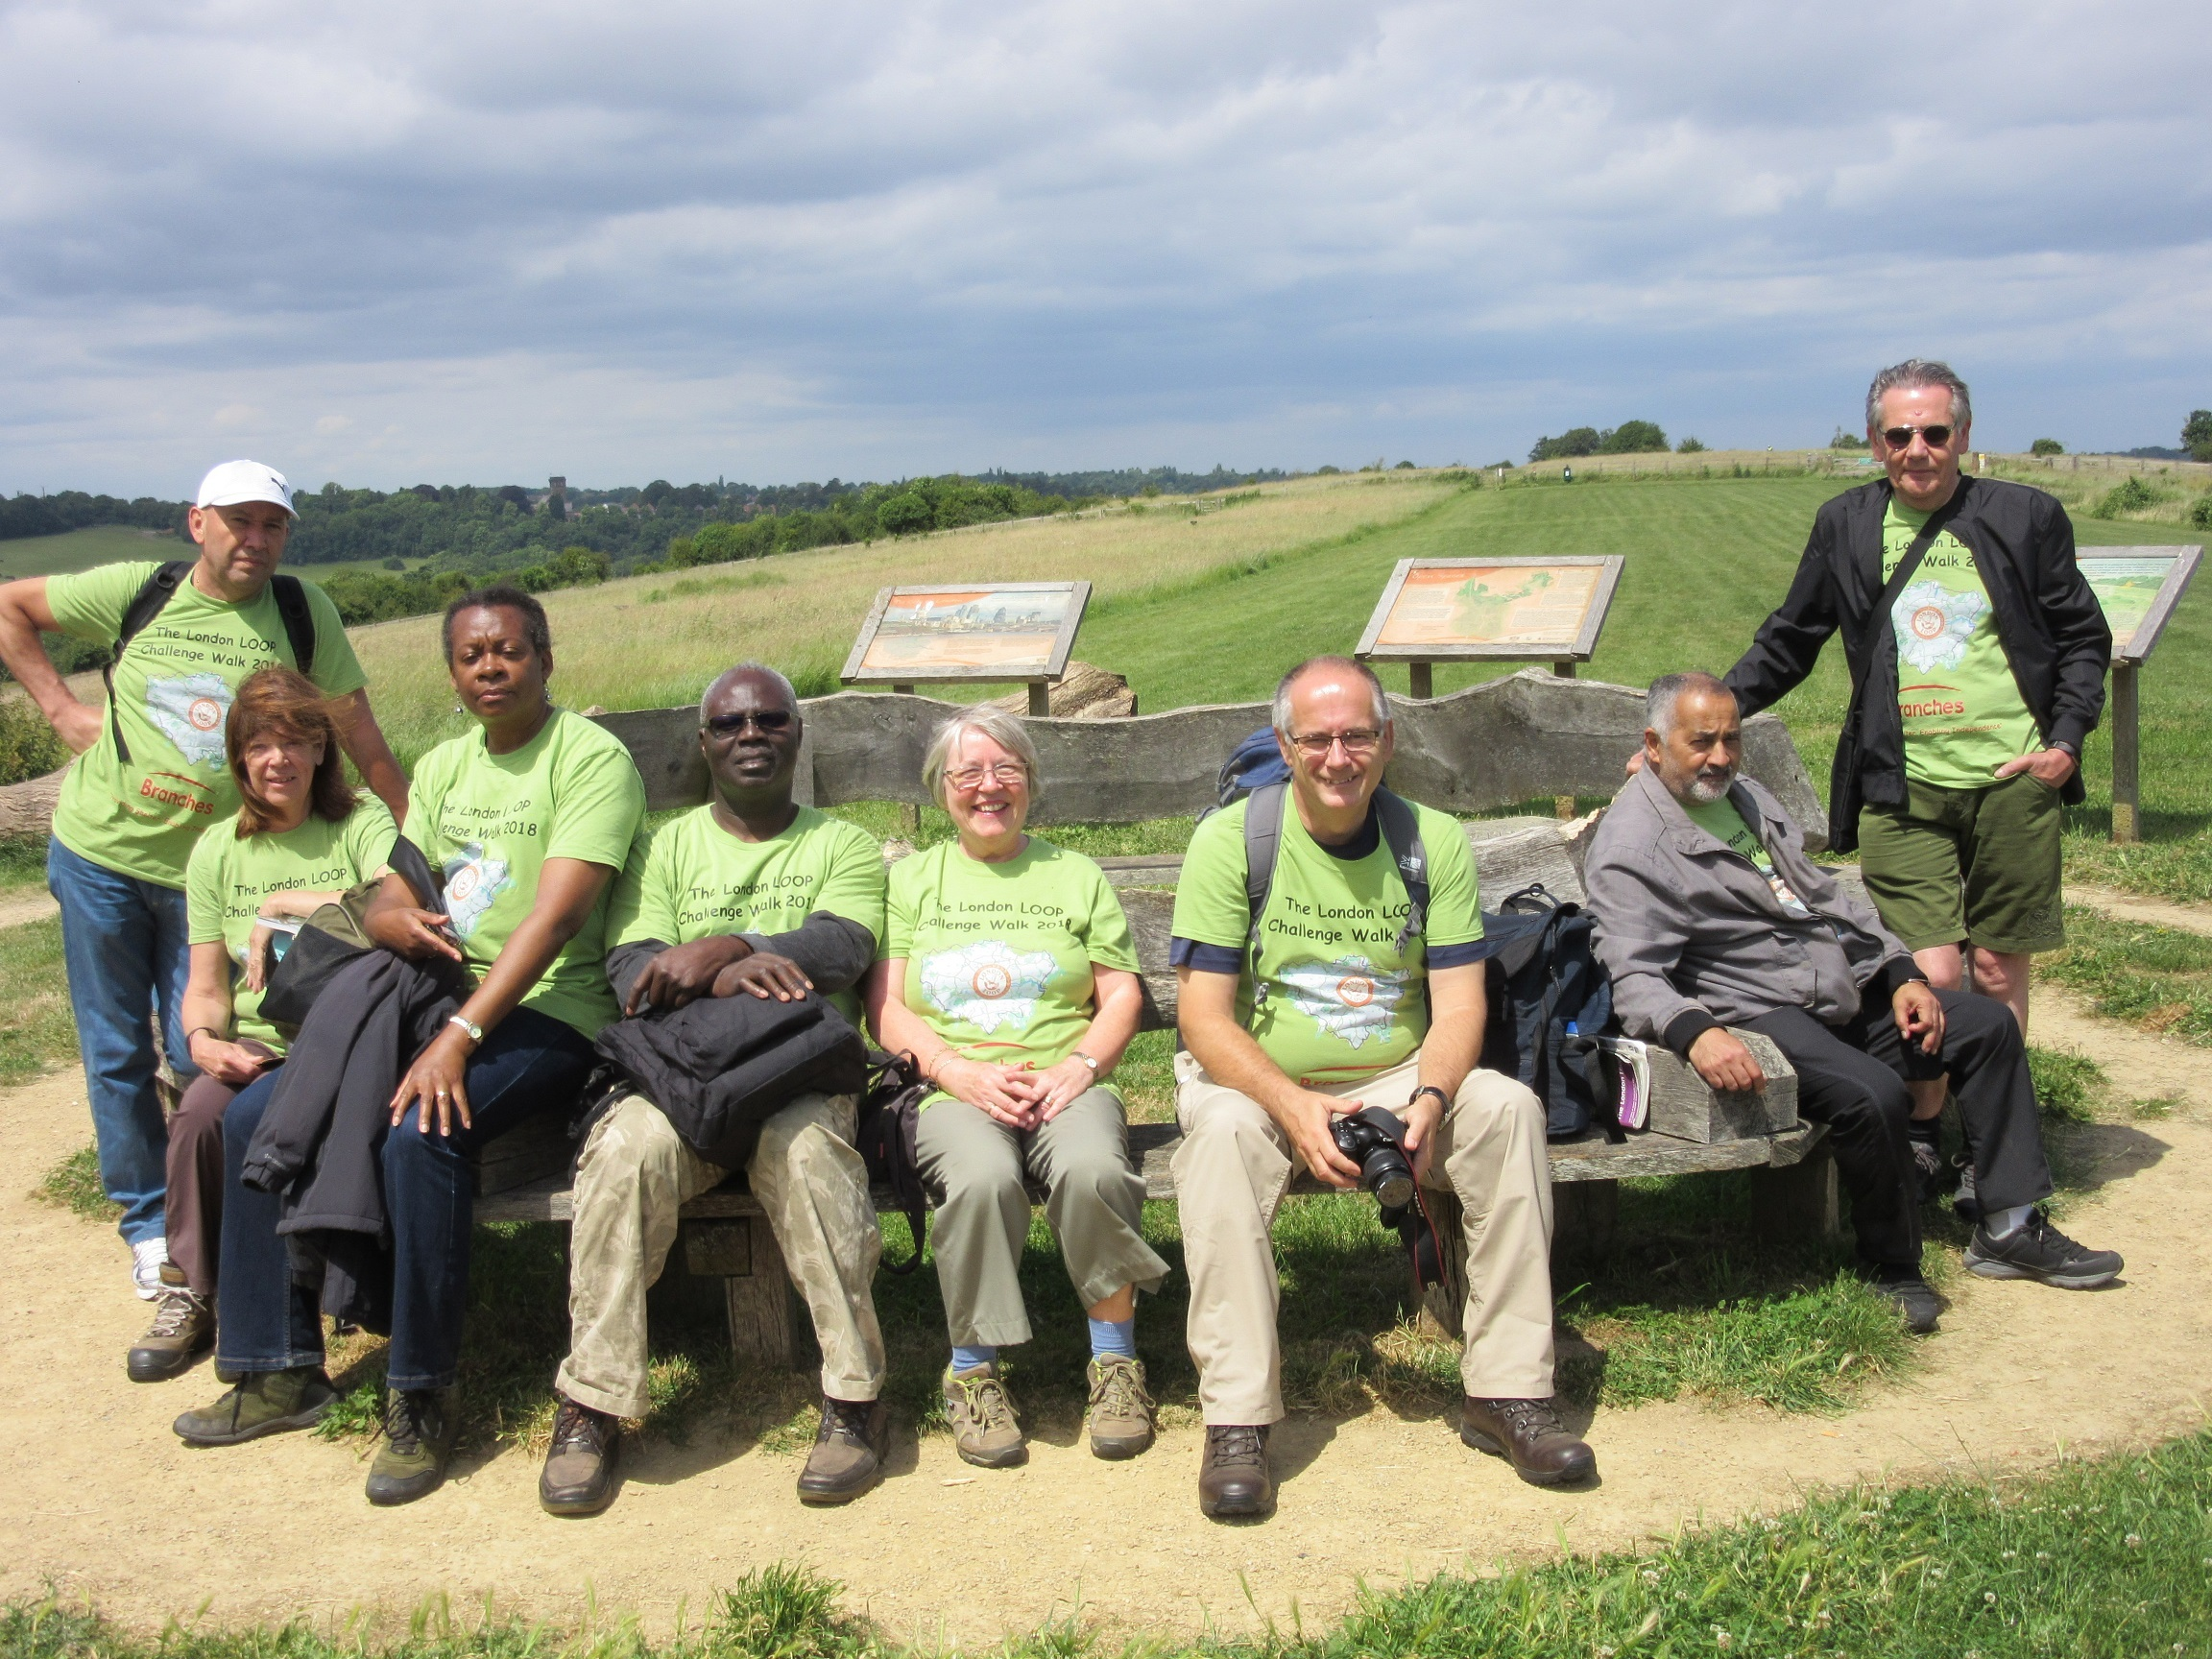 Group takes on teh London Loop